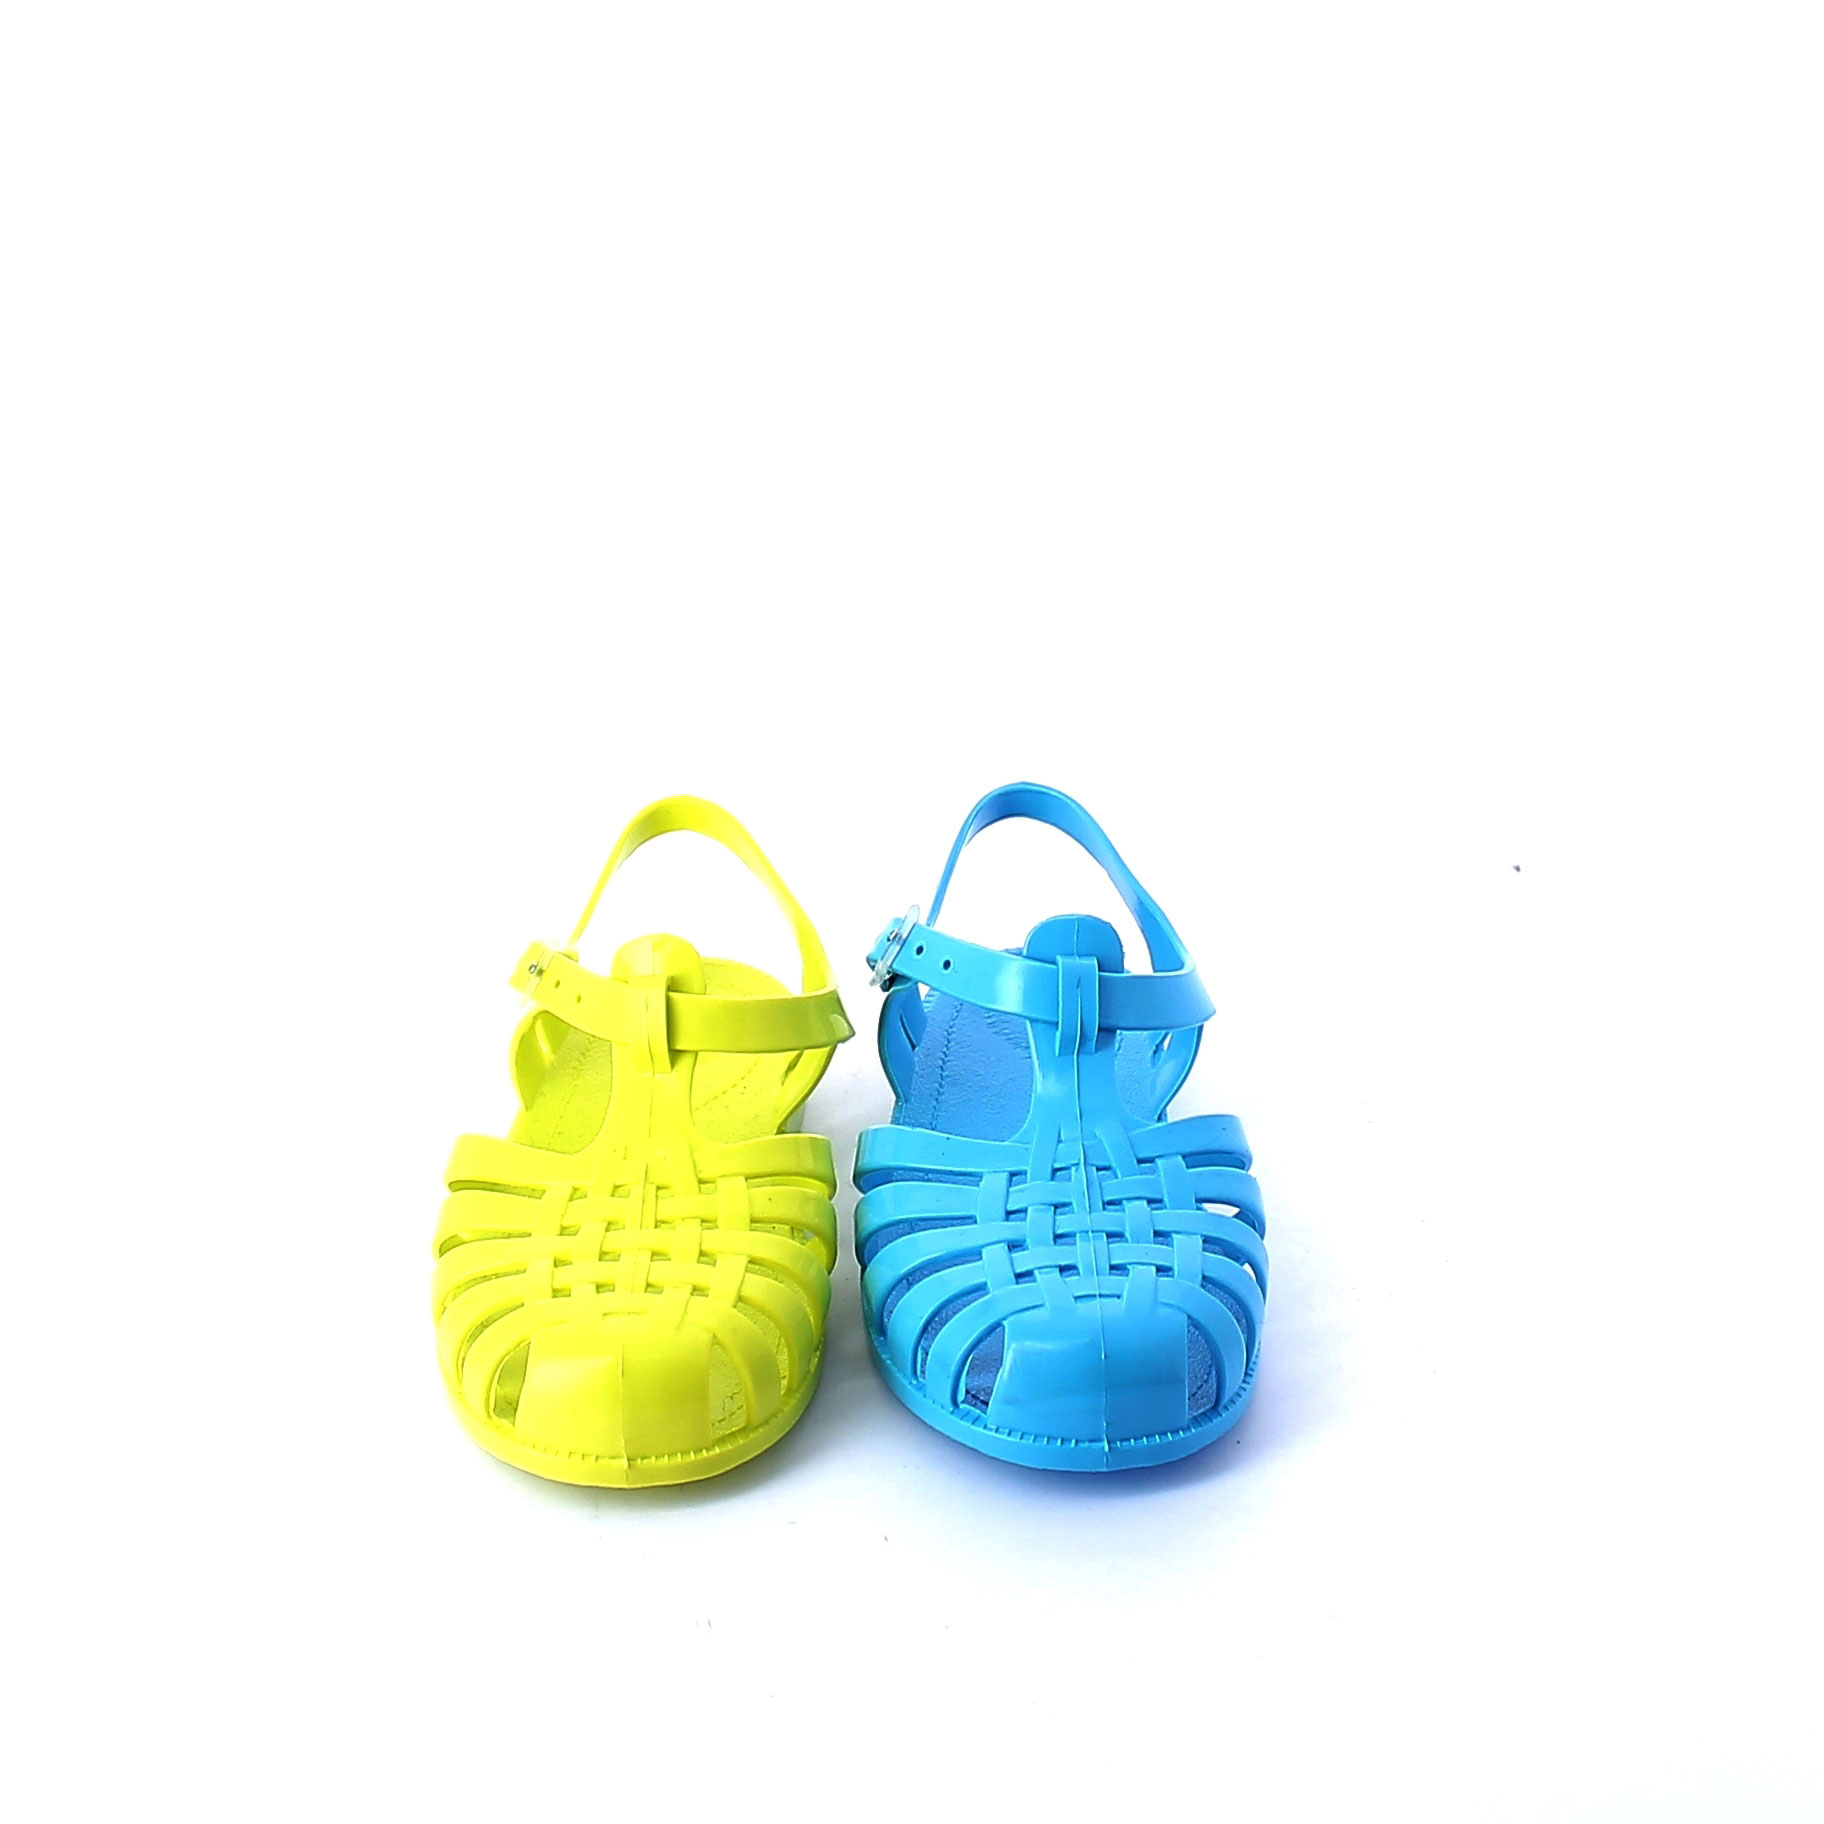 Solid colour pvc jelly sandal with bright effect 86 basico, pvc colori coprenti